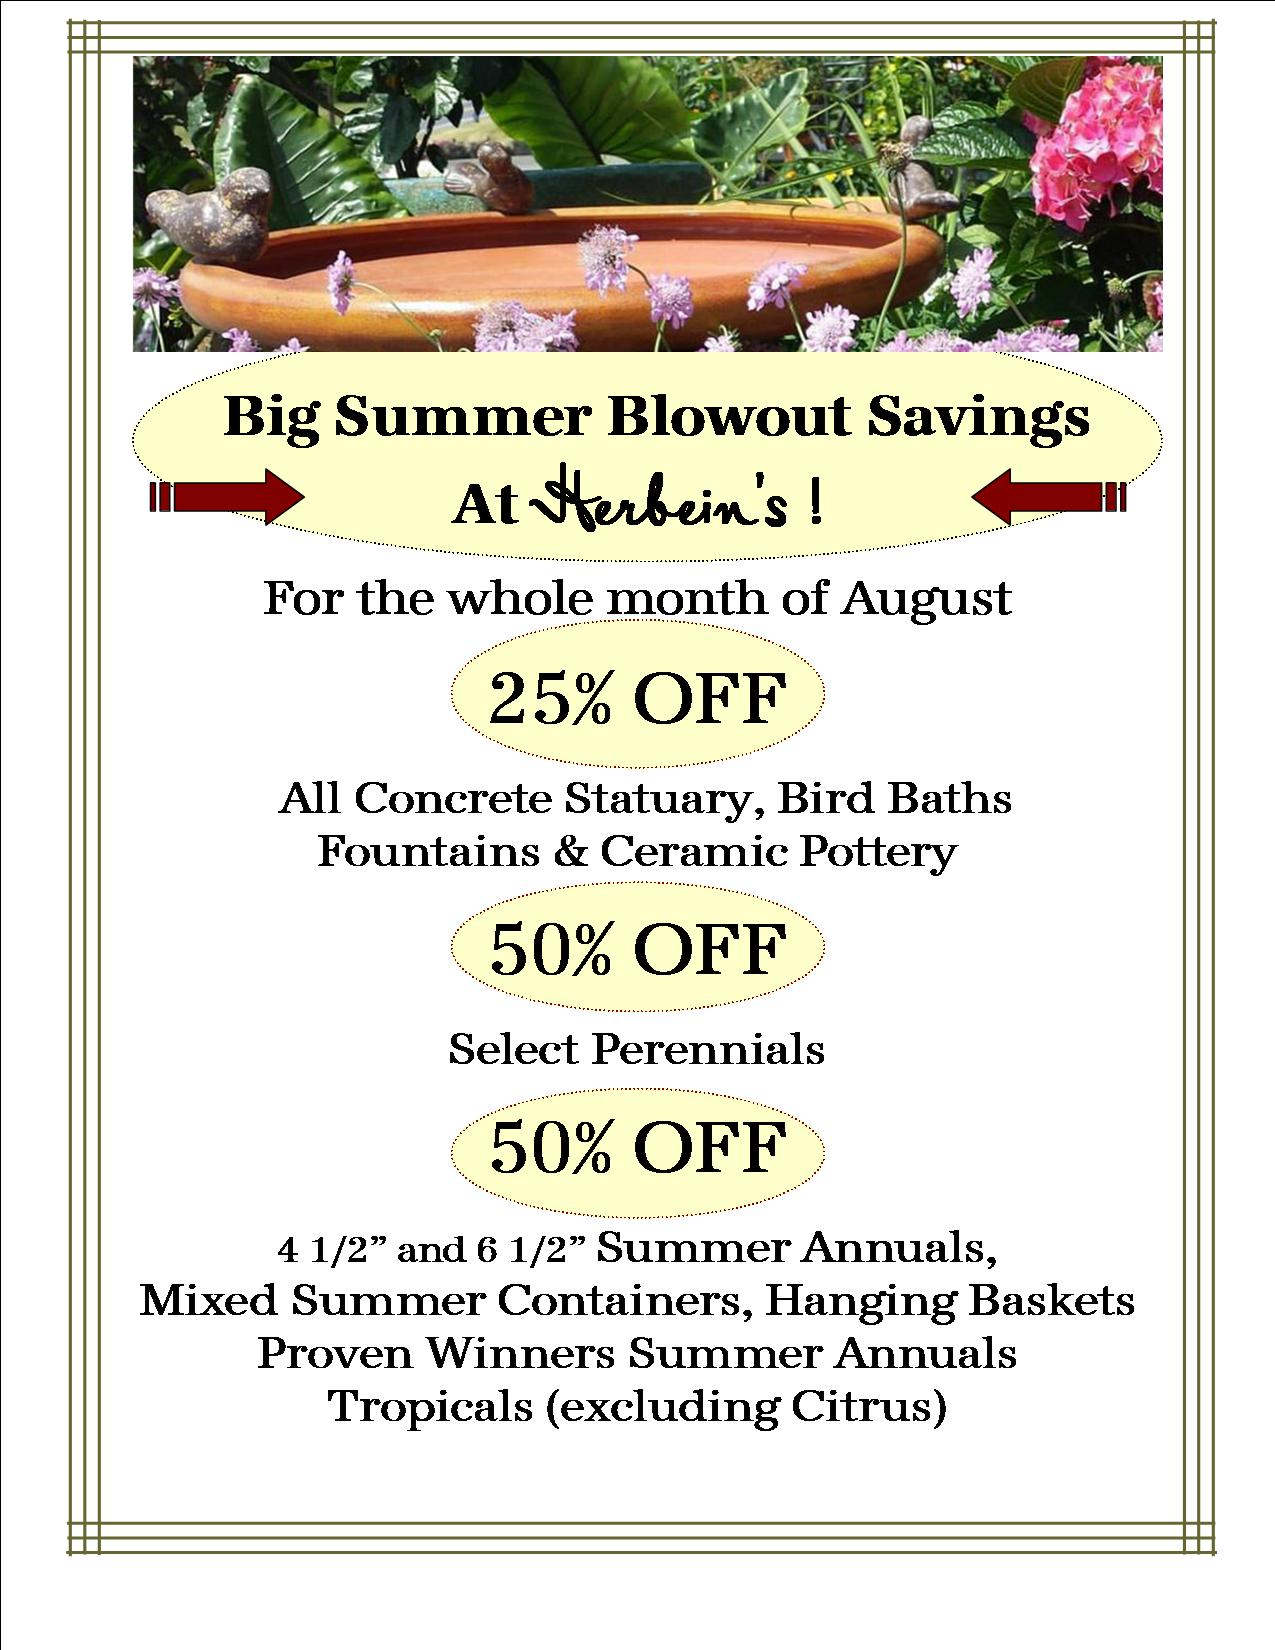 August Blowout Sale Fountains Statuary Bird Baths Pottery Concrete Perennials Flowers Herbeins Garden Center Lehigh Valley Emmaus Pa